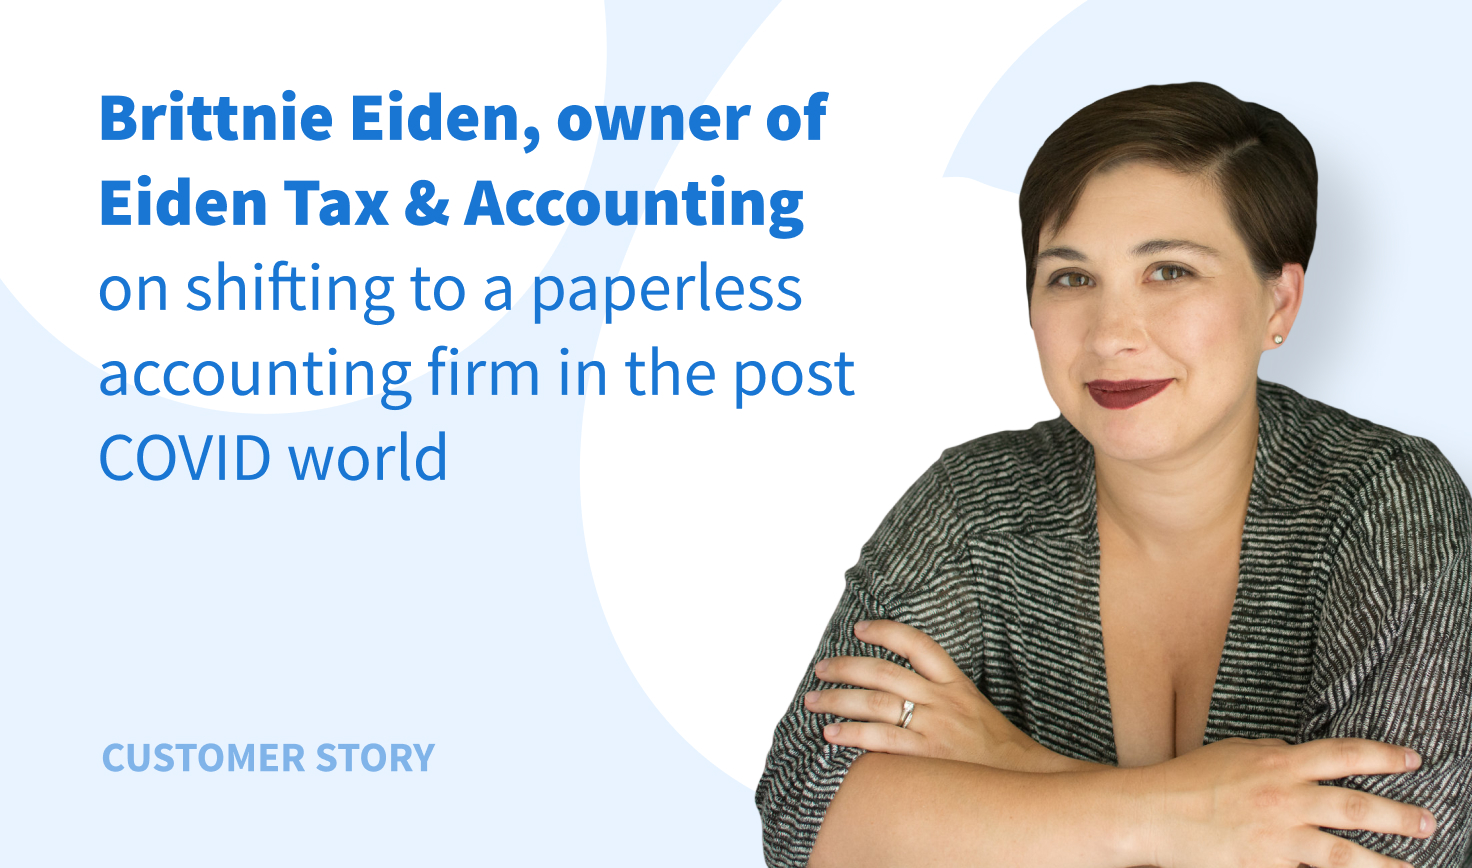 Eiden Tax & Accounting Experience: Shifting to a Paperless Accounting Firm in the Post COVID World